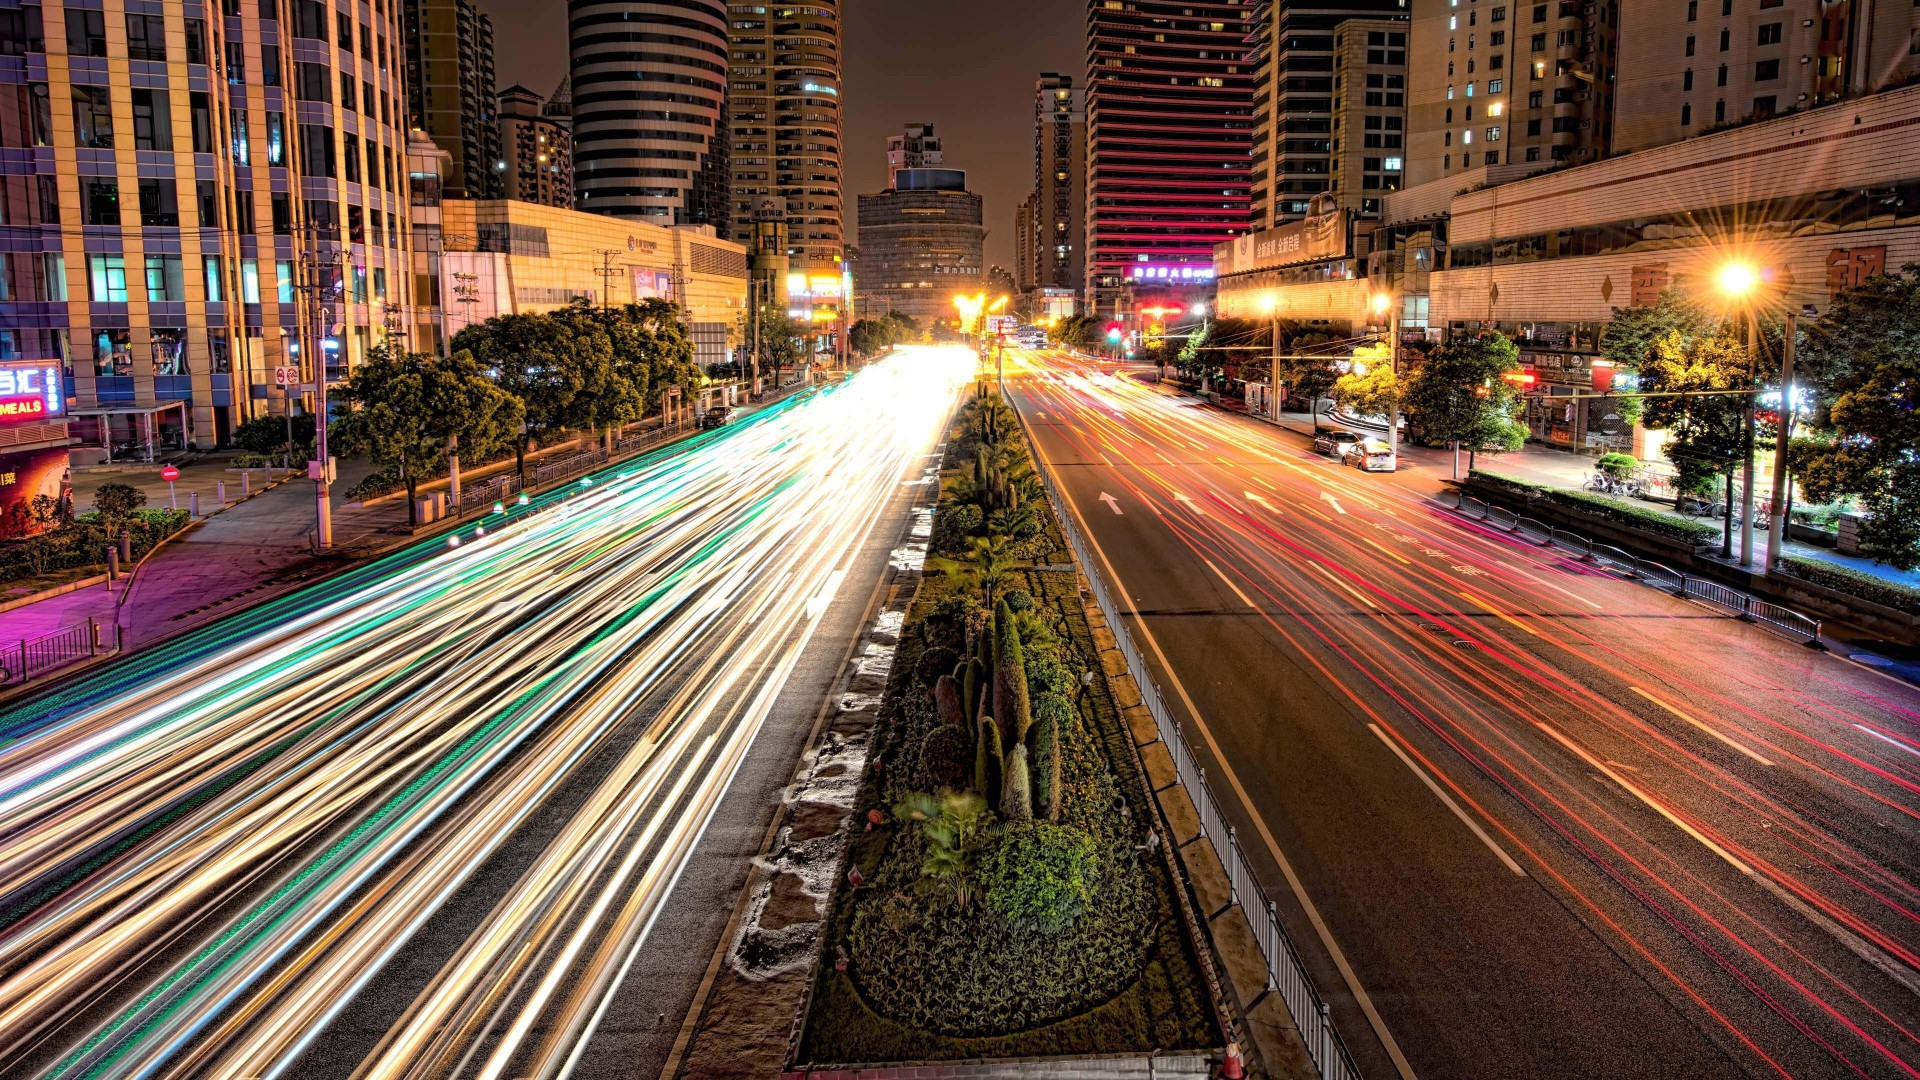 Busy Road in Shanghai at Night Wallpaper for Desktop 1920x1080